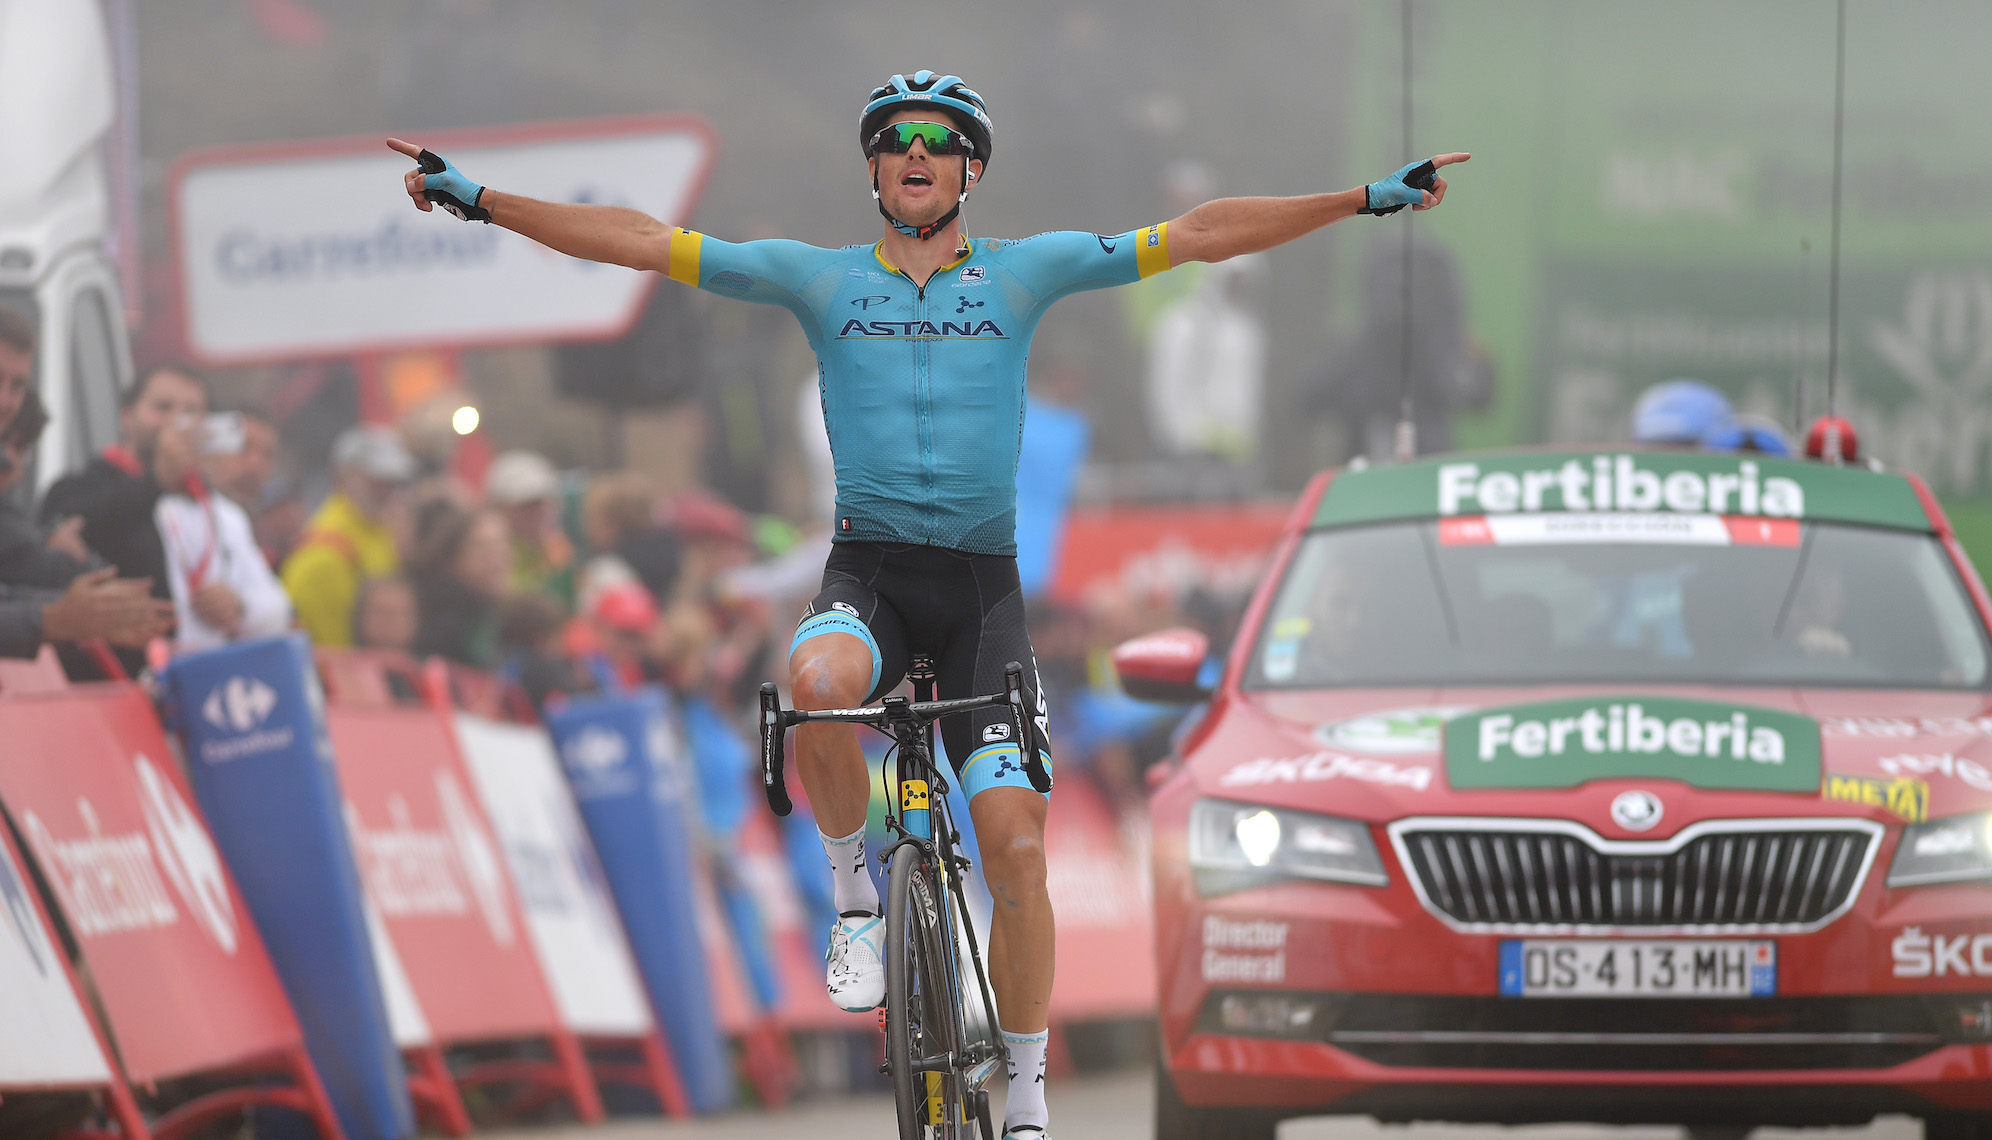 Jakob Fuglsang takes Vuelta a España stage 16 as Tadej Pogačar gains on Valverde